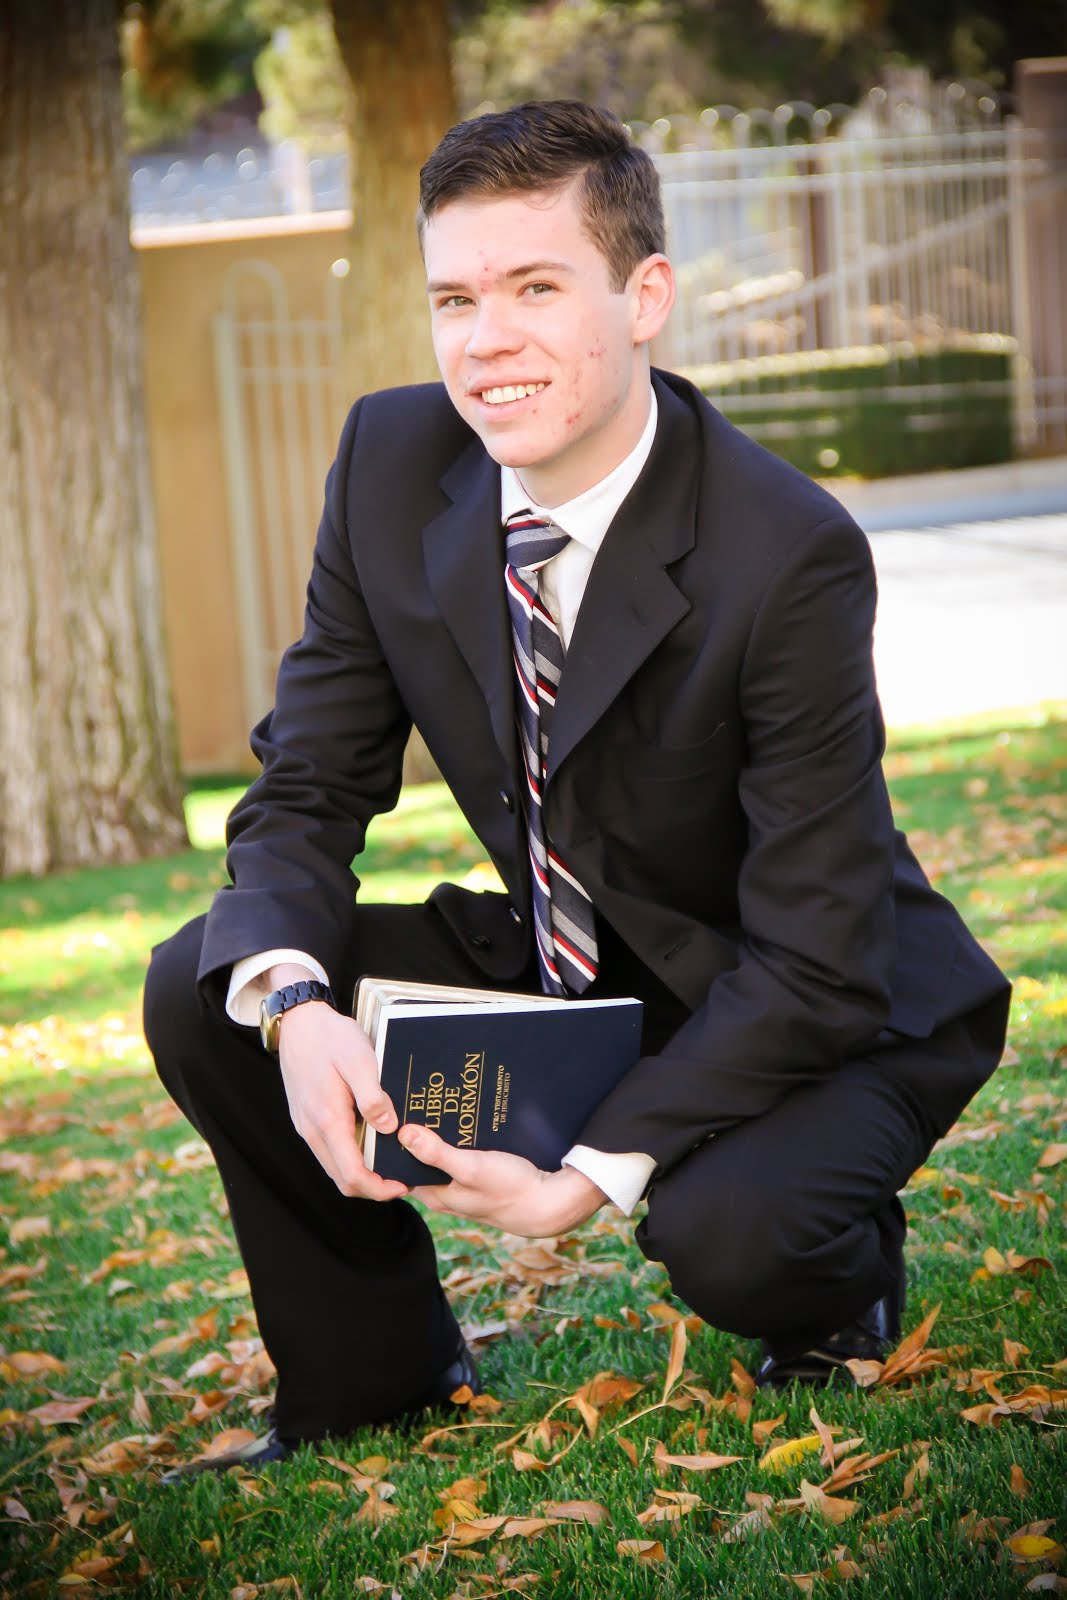 Elder Hollingsworth